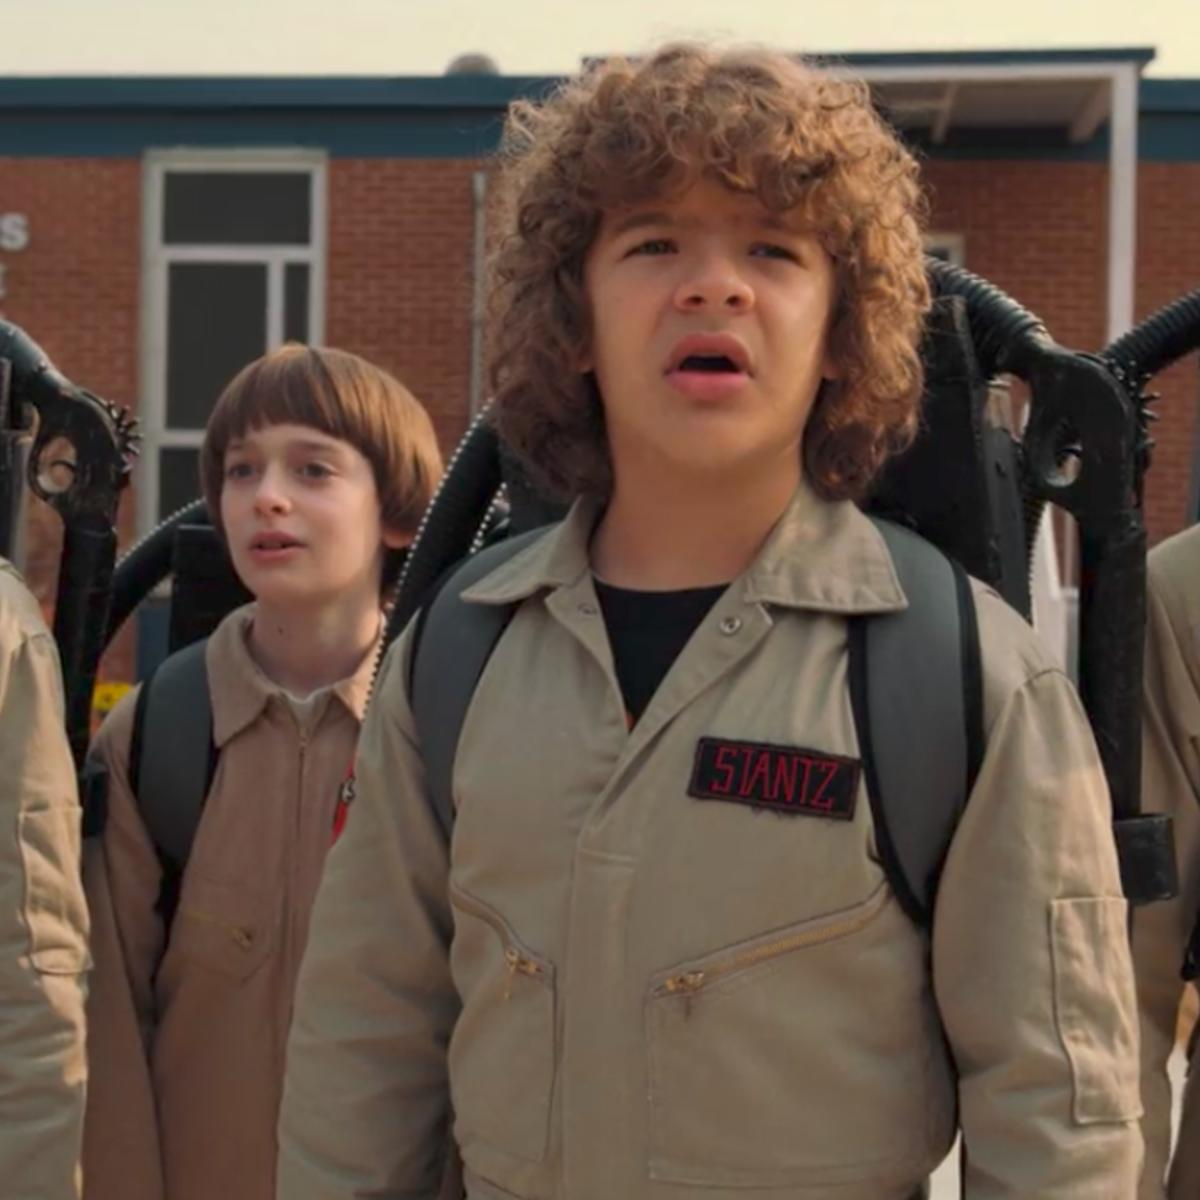 ghostbusters-stranger-things.png